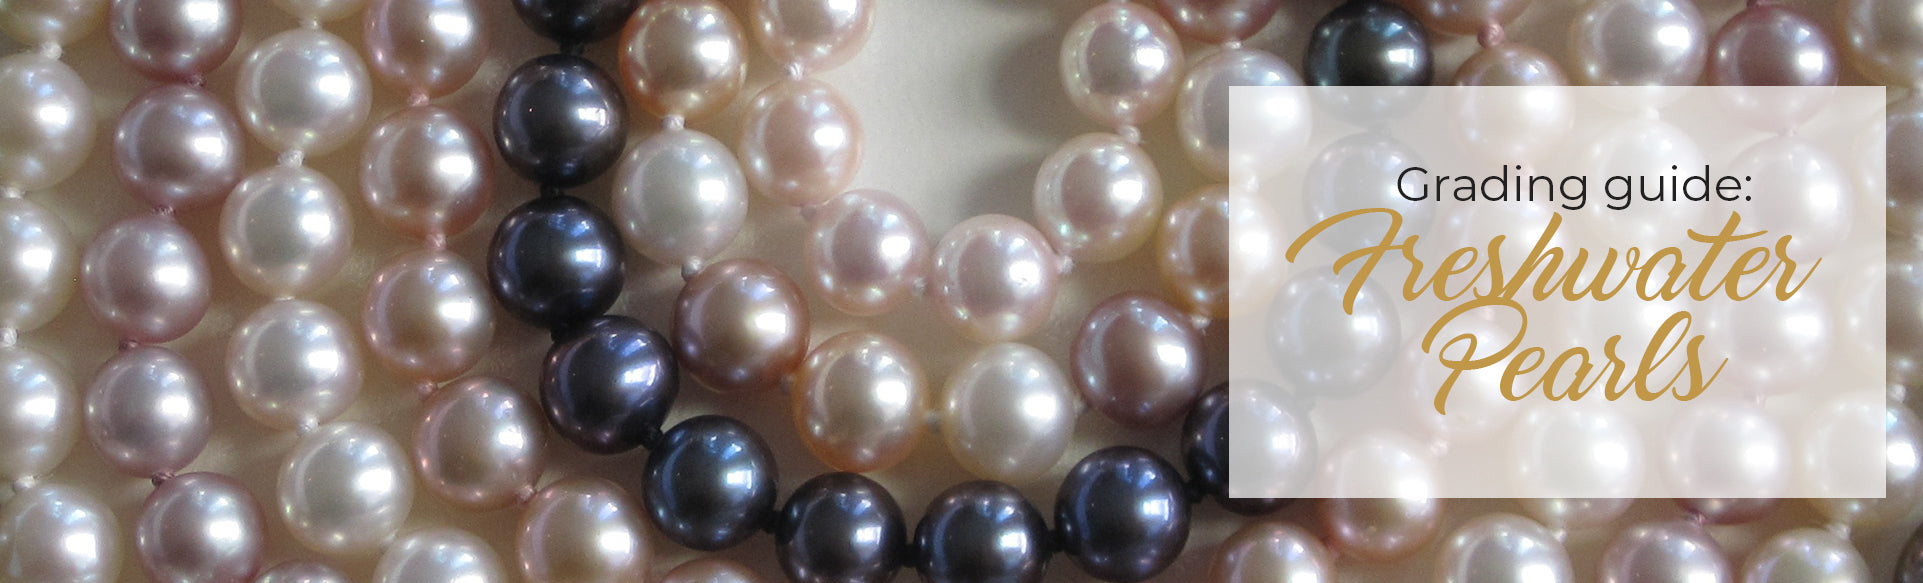 freshwater pearl grading guide